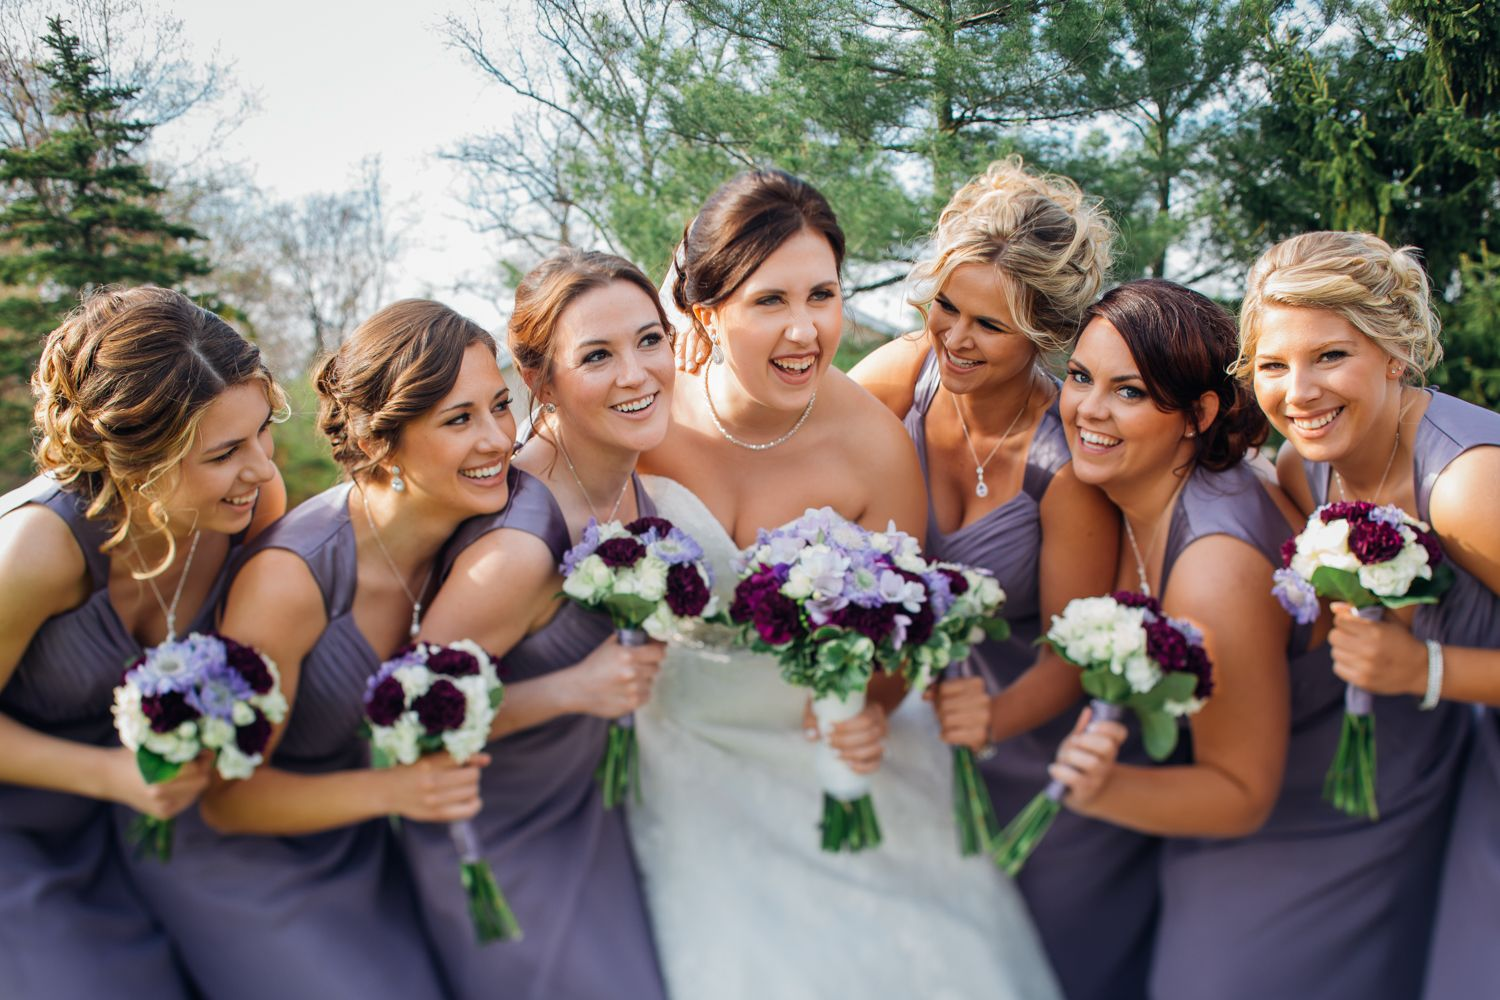 Best wedding bouquet and bridesmaids dresses in lavender juliana best wedding bouquet and bridesmaids dresses in lavender juliana laury photography philadelphia area ombrellifo Image collections